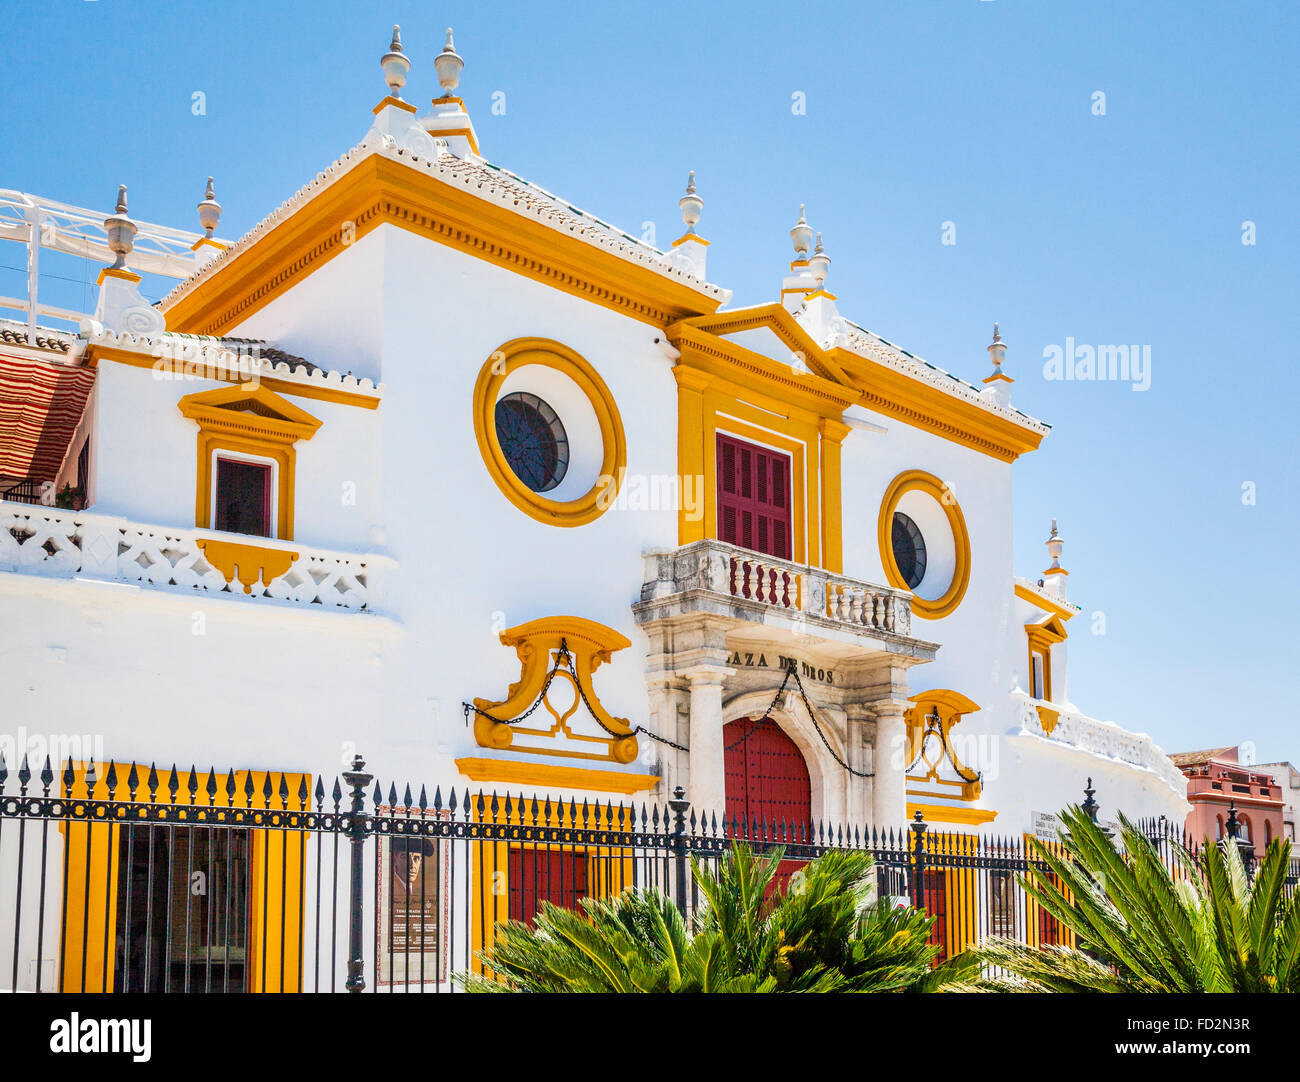 Spain, Andalusia, Province of Seville, Seville, Plaza de Torros de la Real Maestranza, facade of the Seville bullring - Stock Image